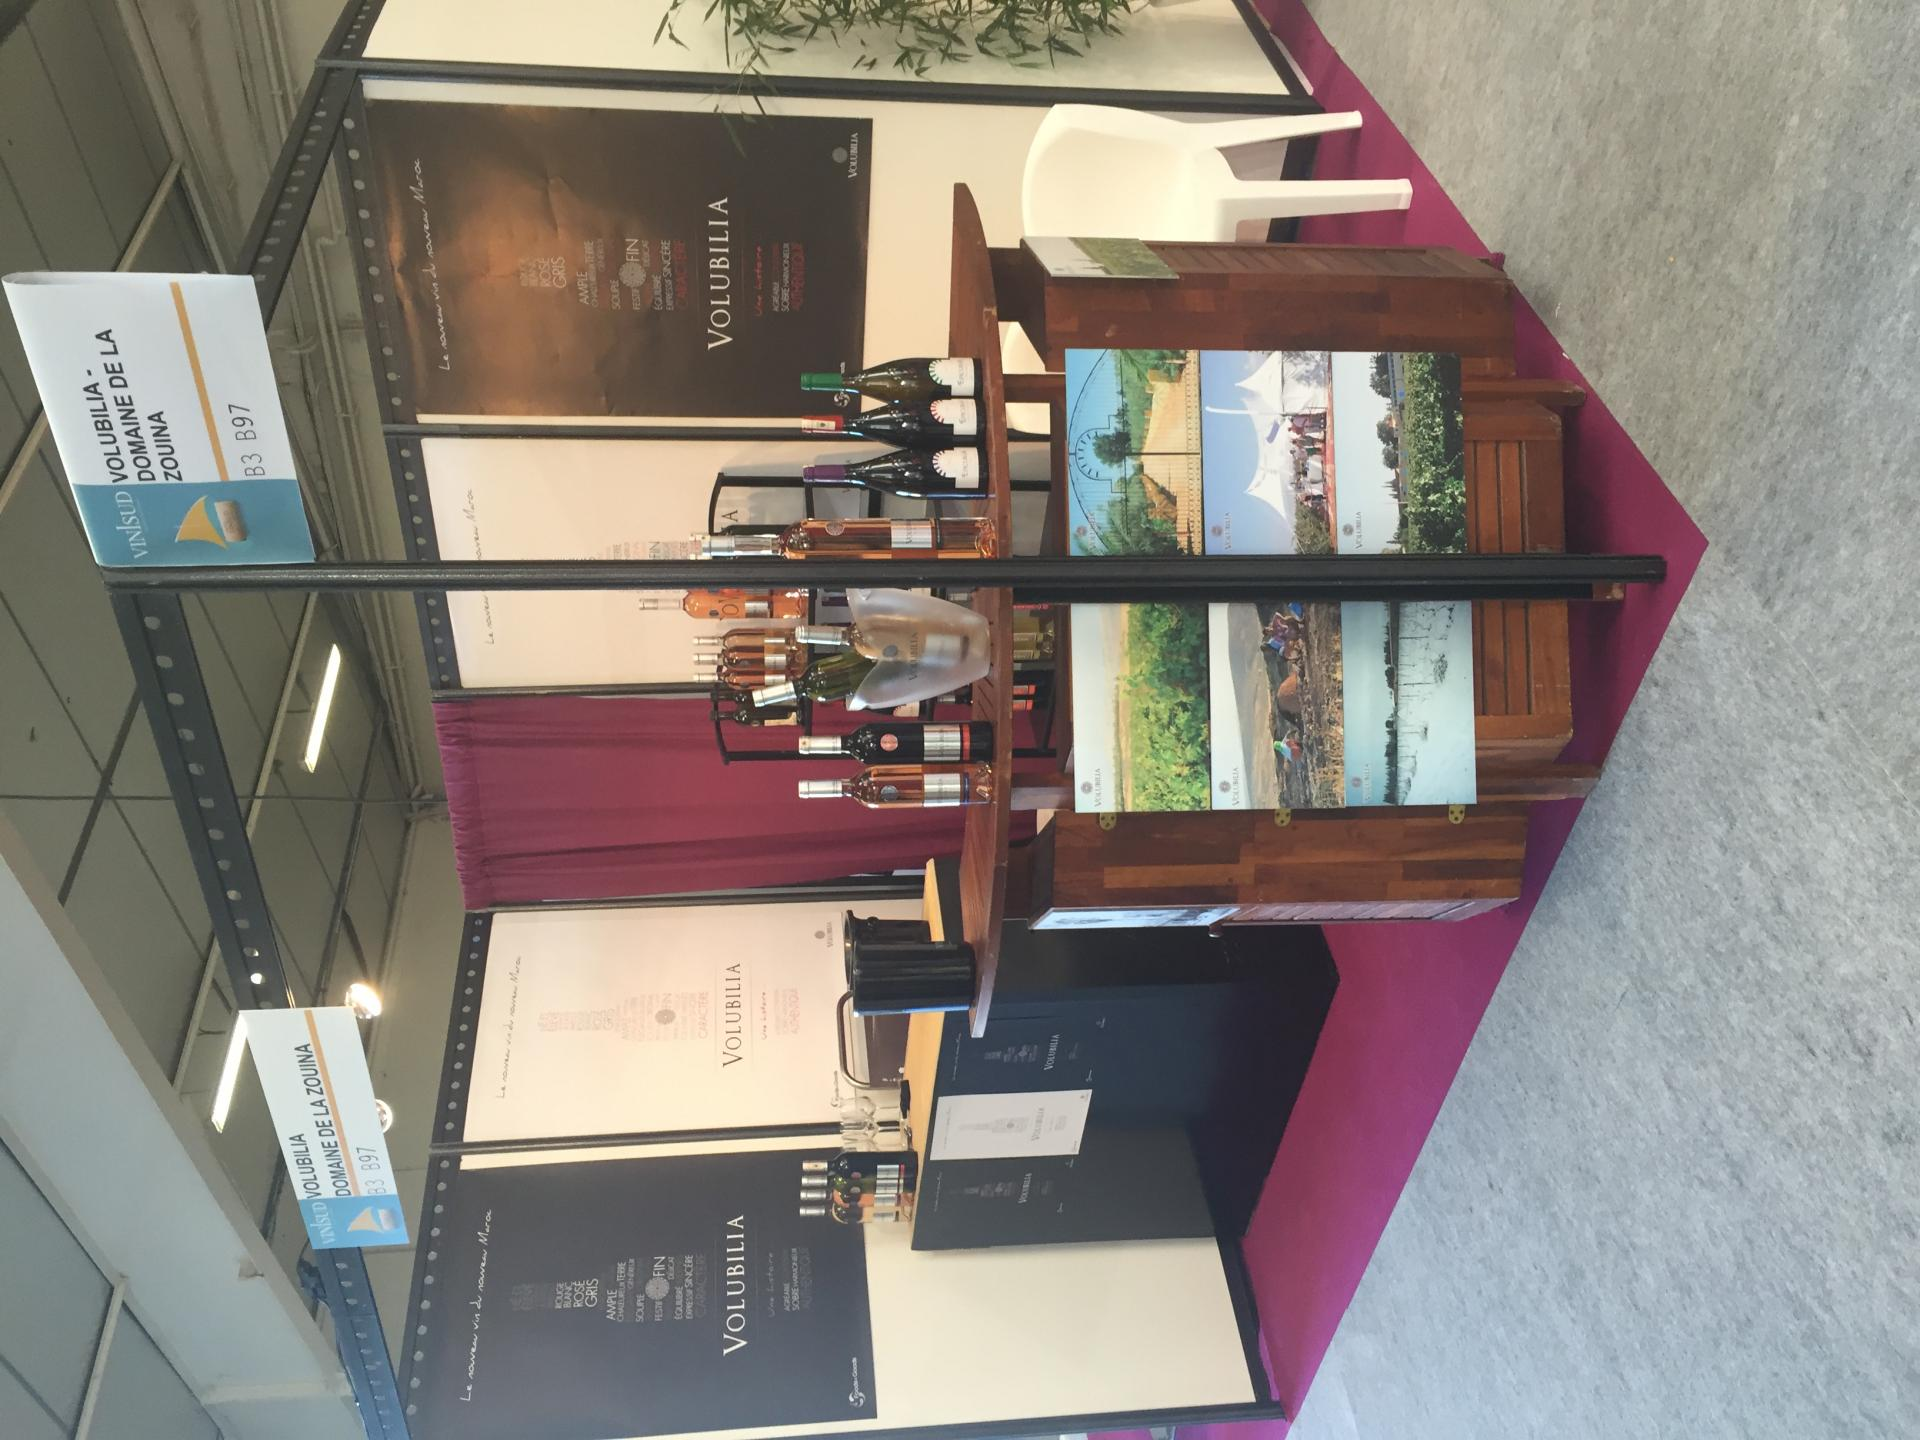 Vinisud exhibition